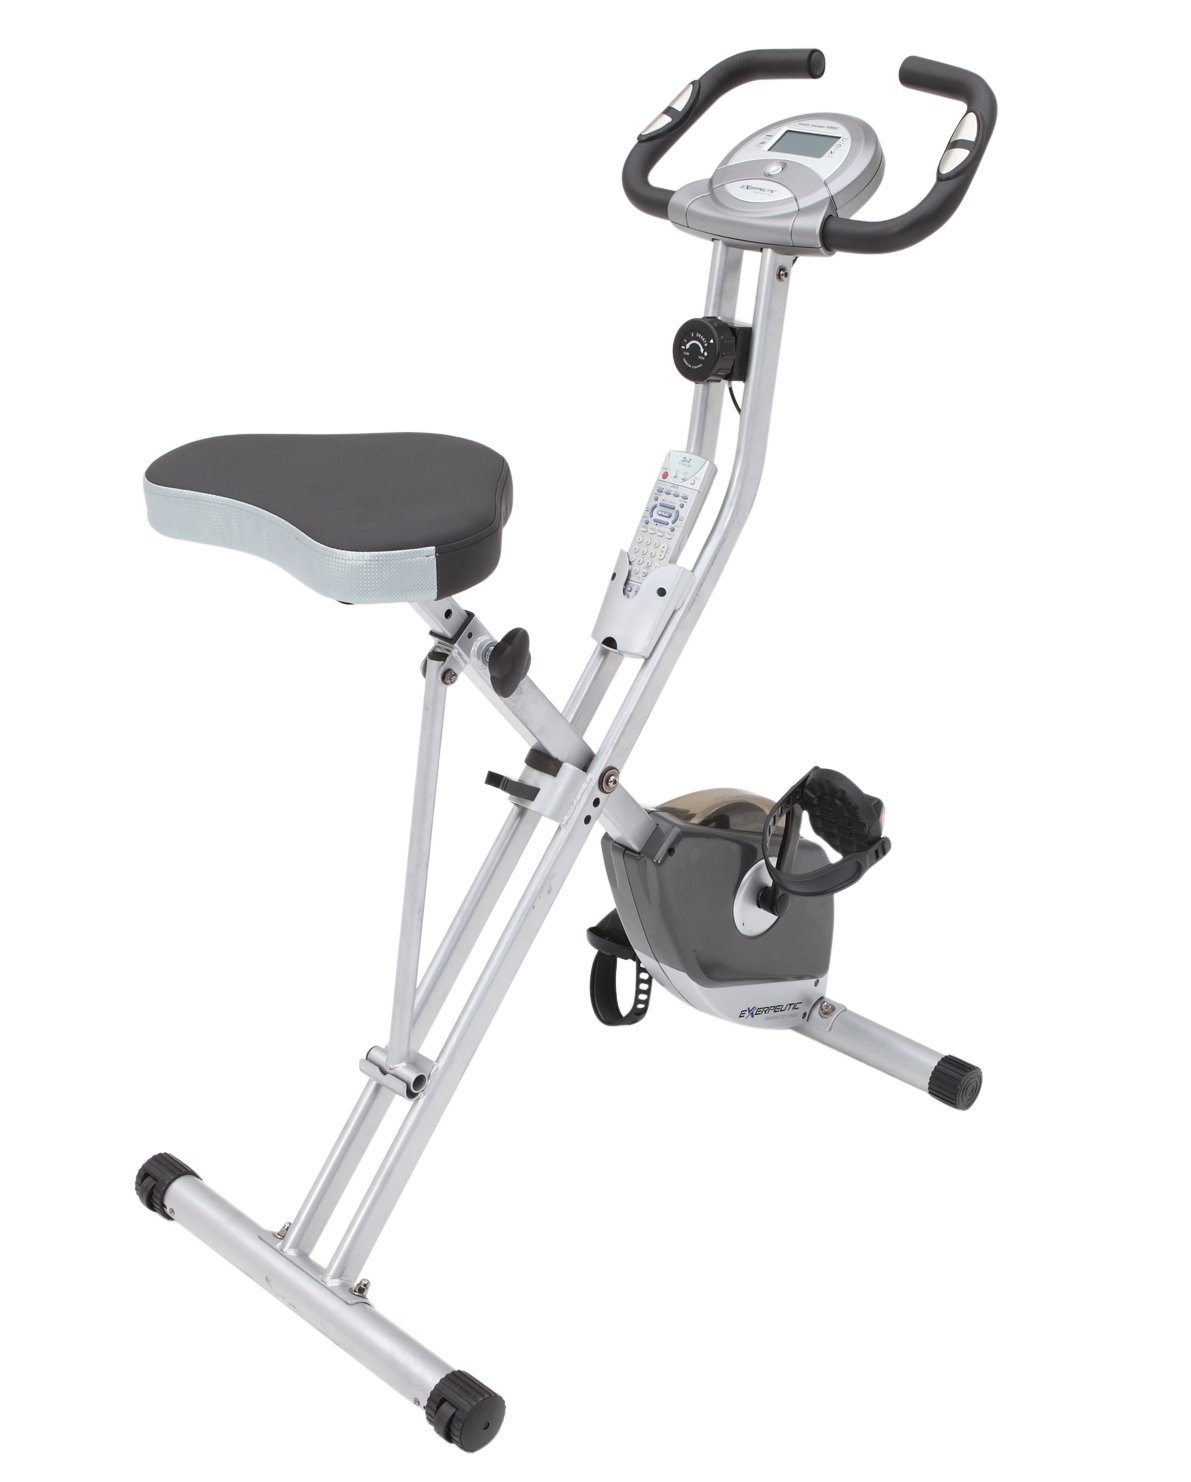 Our Exerpeutic Bike Reviews Break Down These Popular Low Cost Options